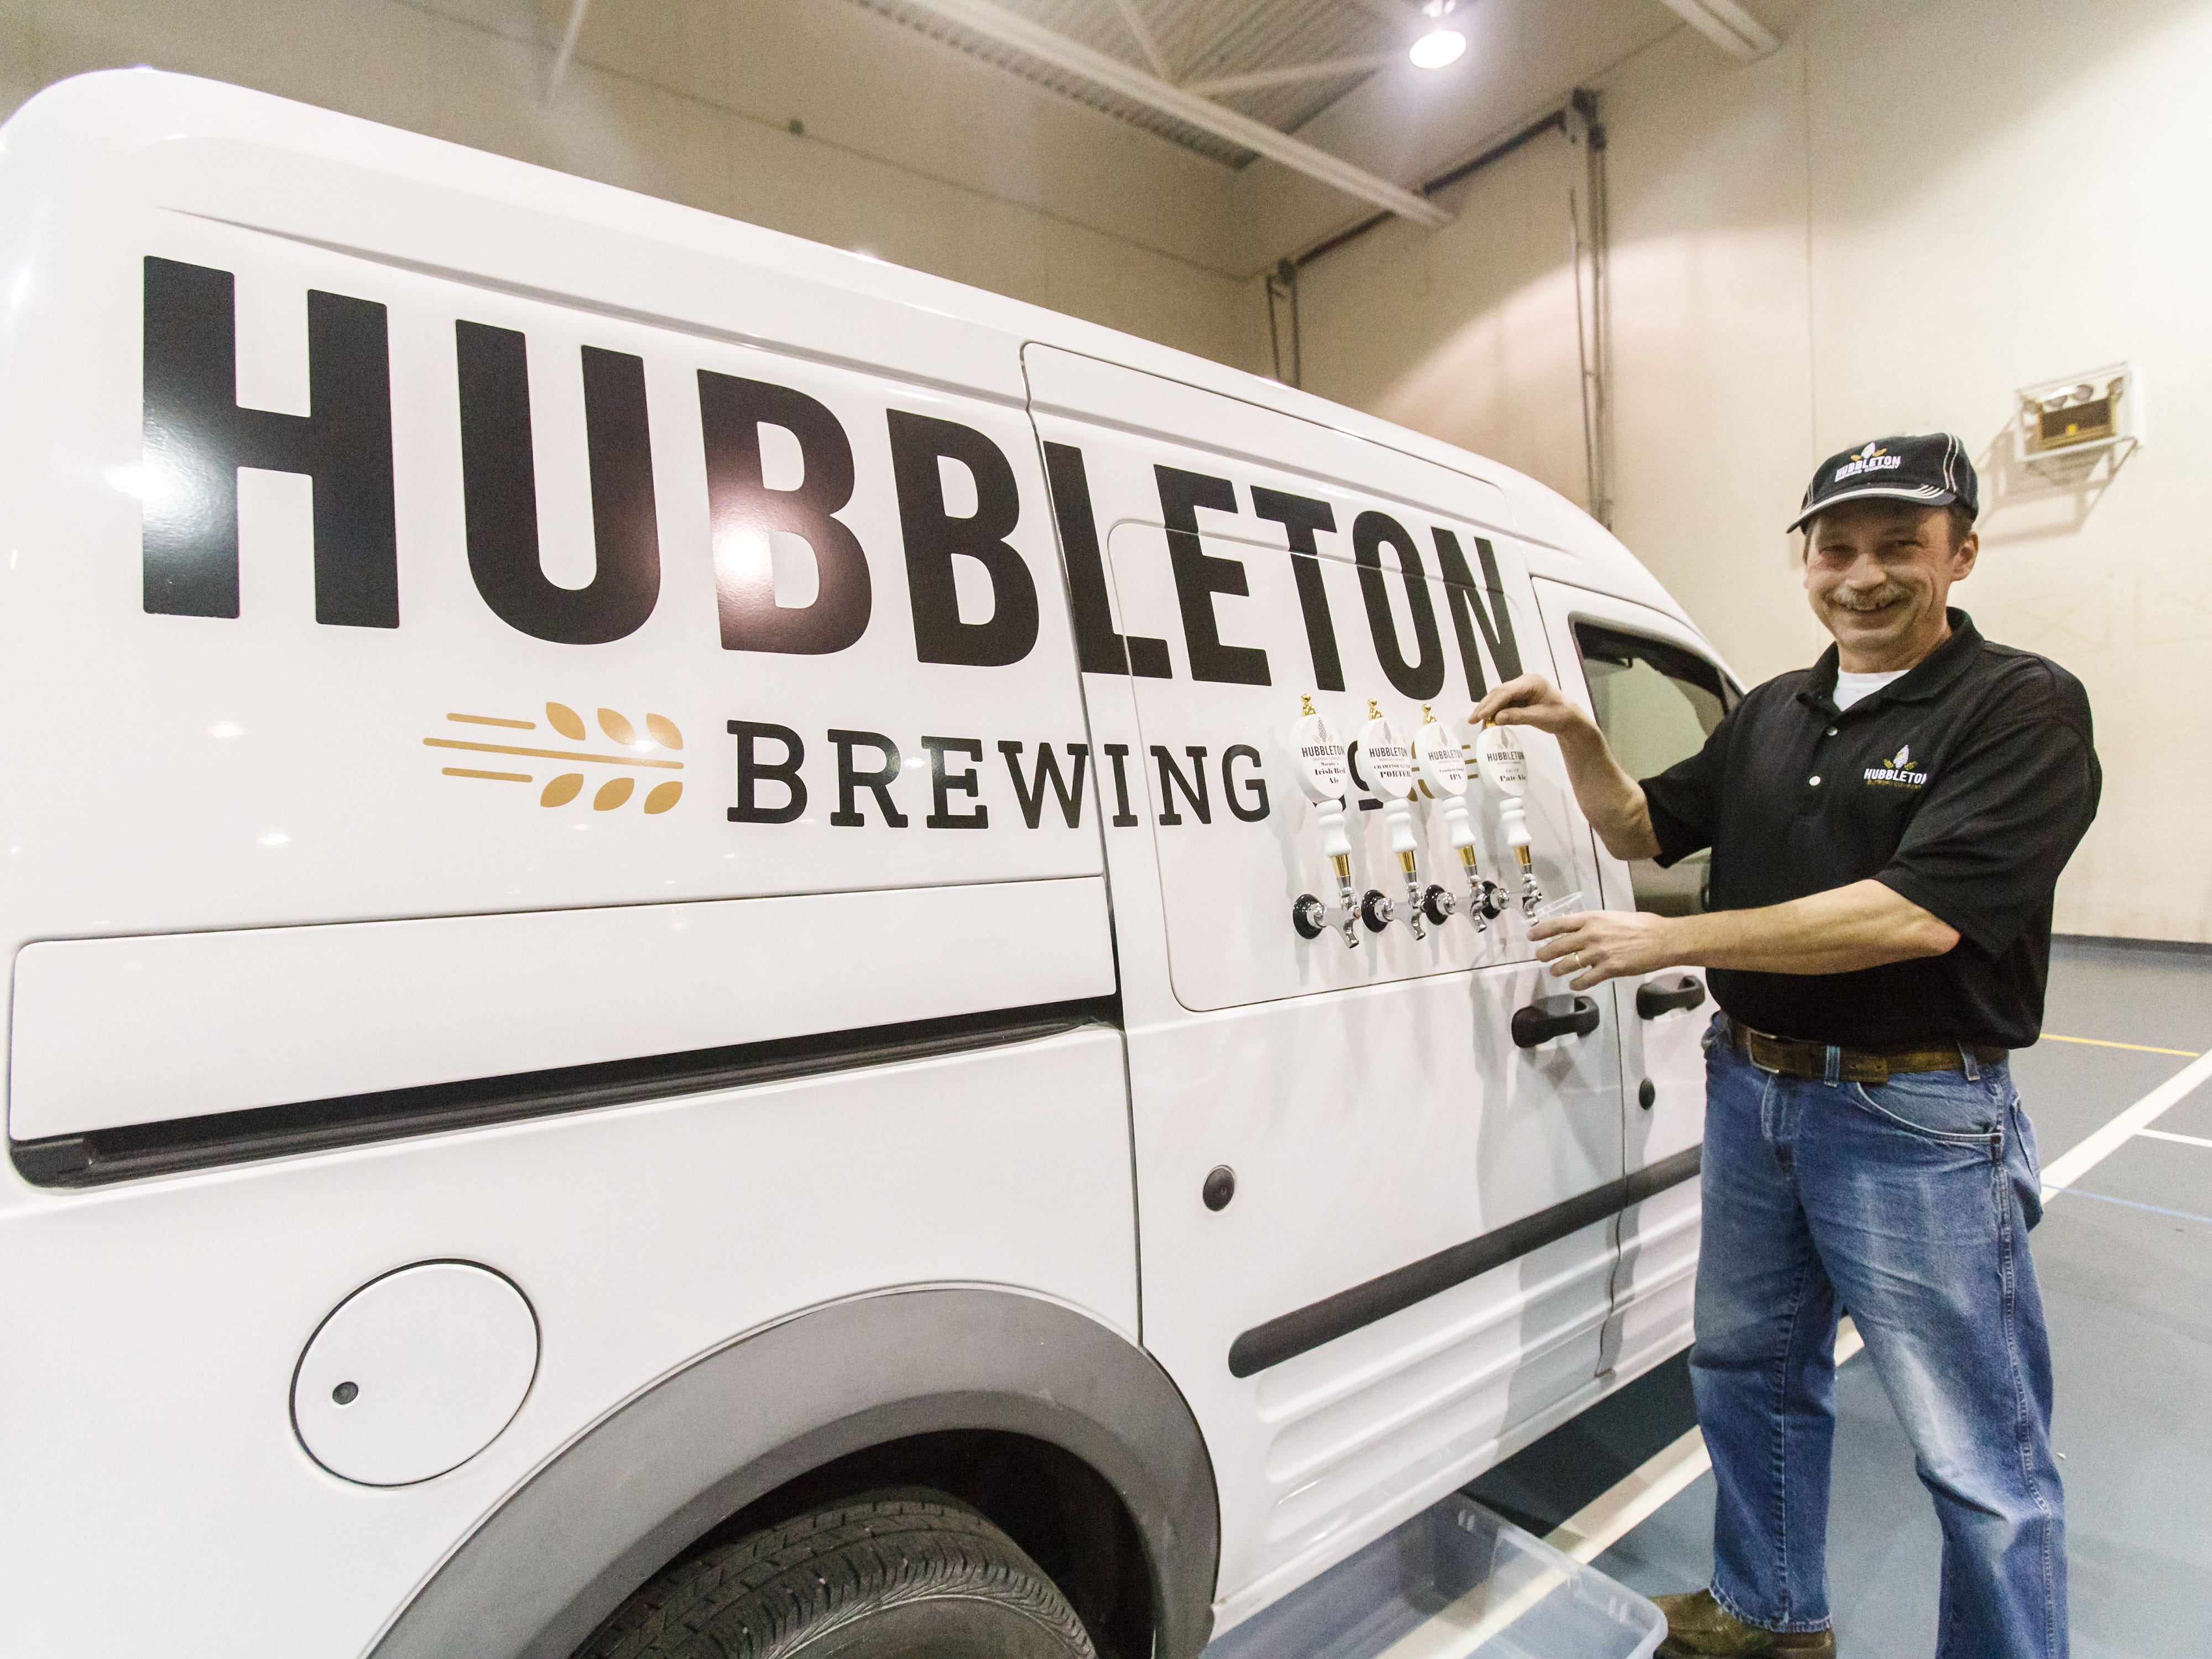 Owner Dan Schey of Hubbleton Brewing prepares for an onslaught of thirsty runners during the 14th annual Run Into the New Year hosted by Lighthouse Events at the Milwaukee County Sports Complex in Franklin on Monday, Dec. 31, 2018.